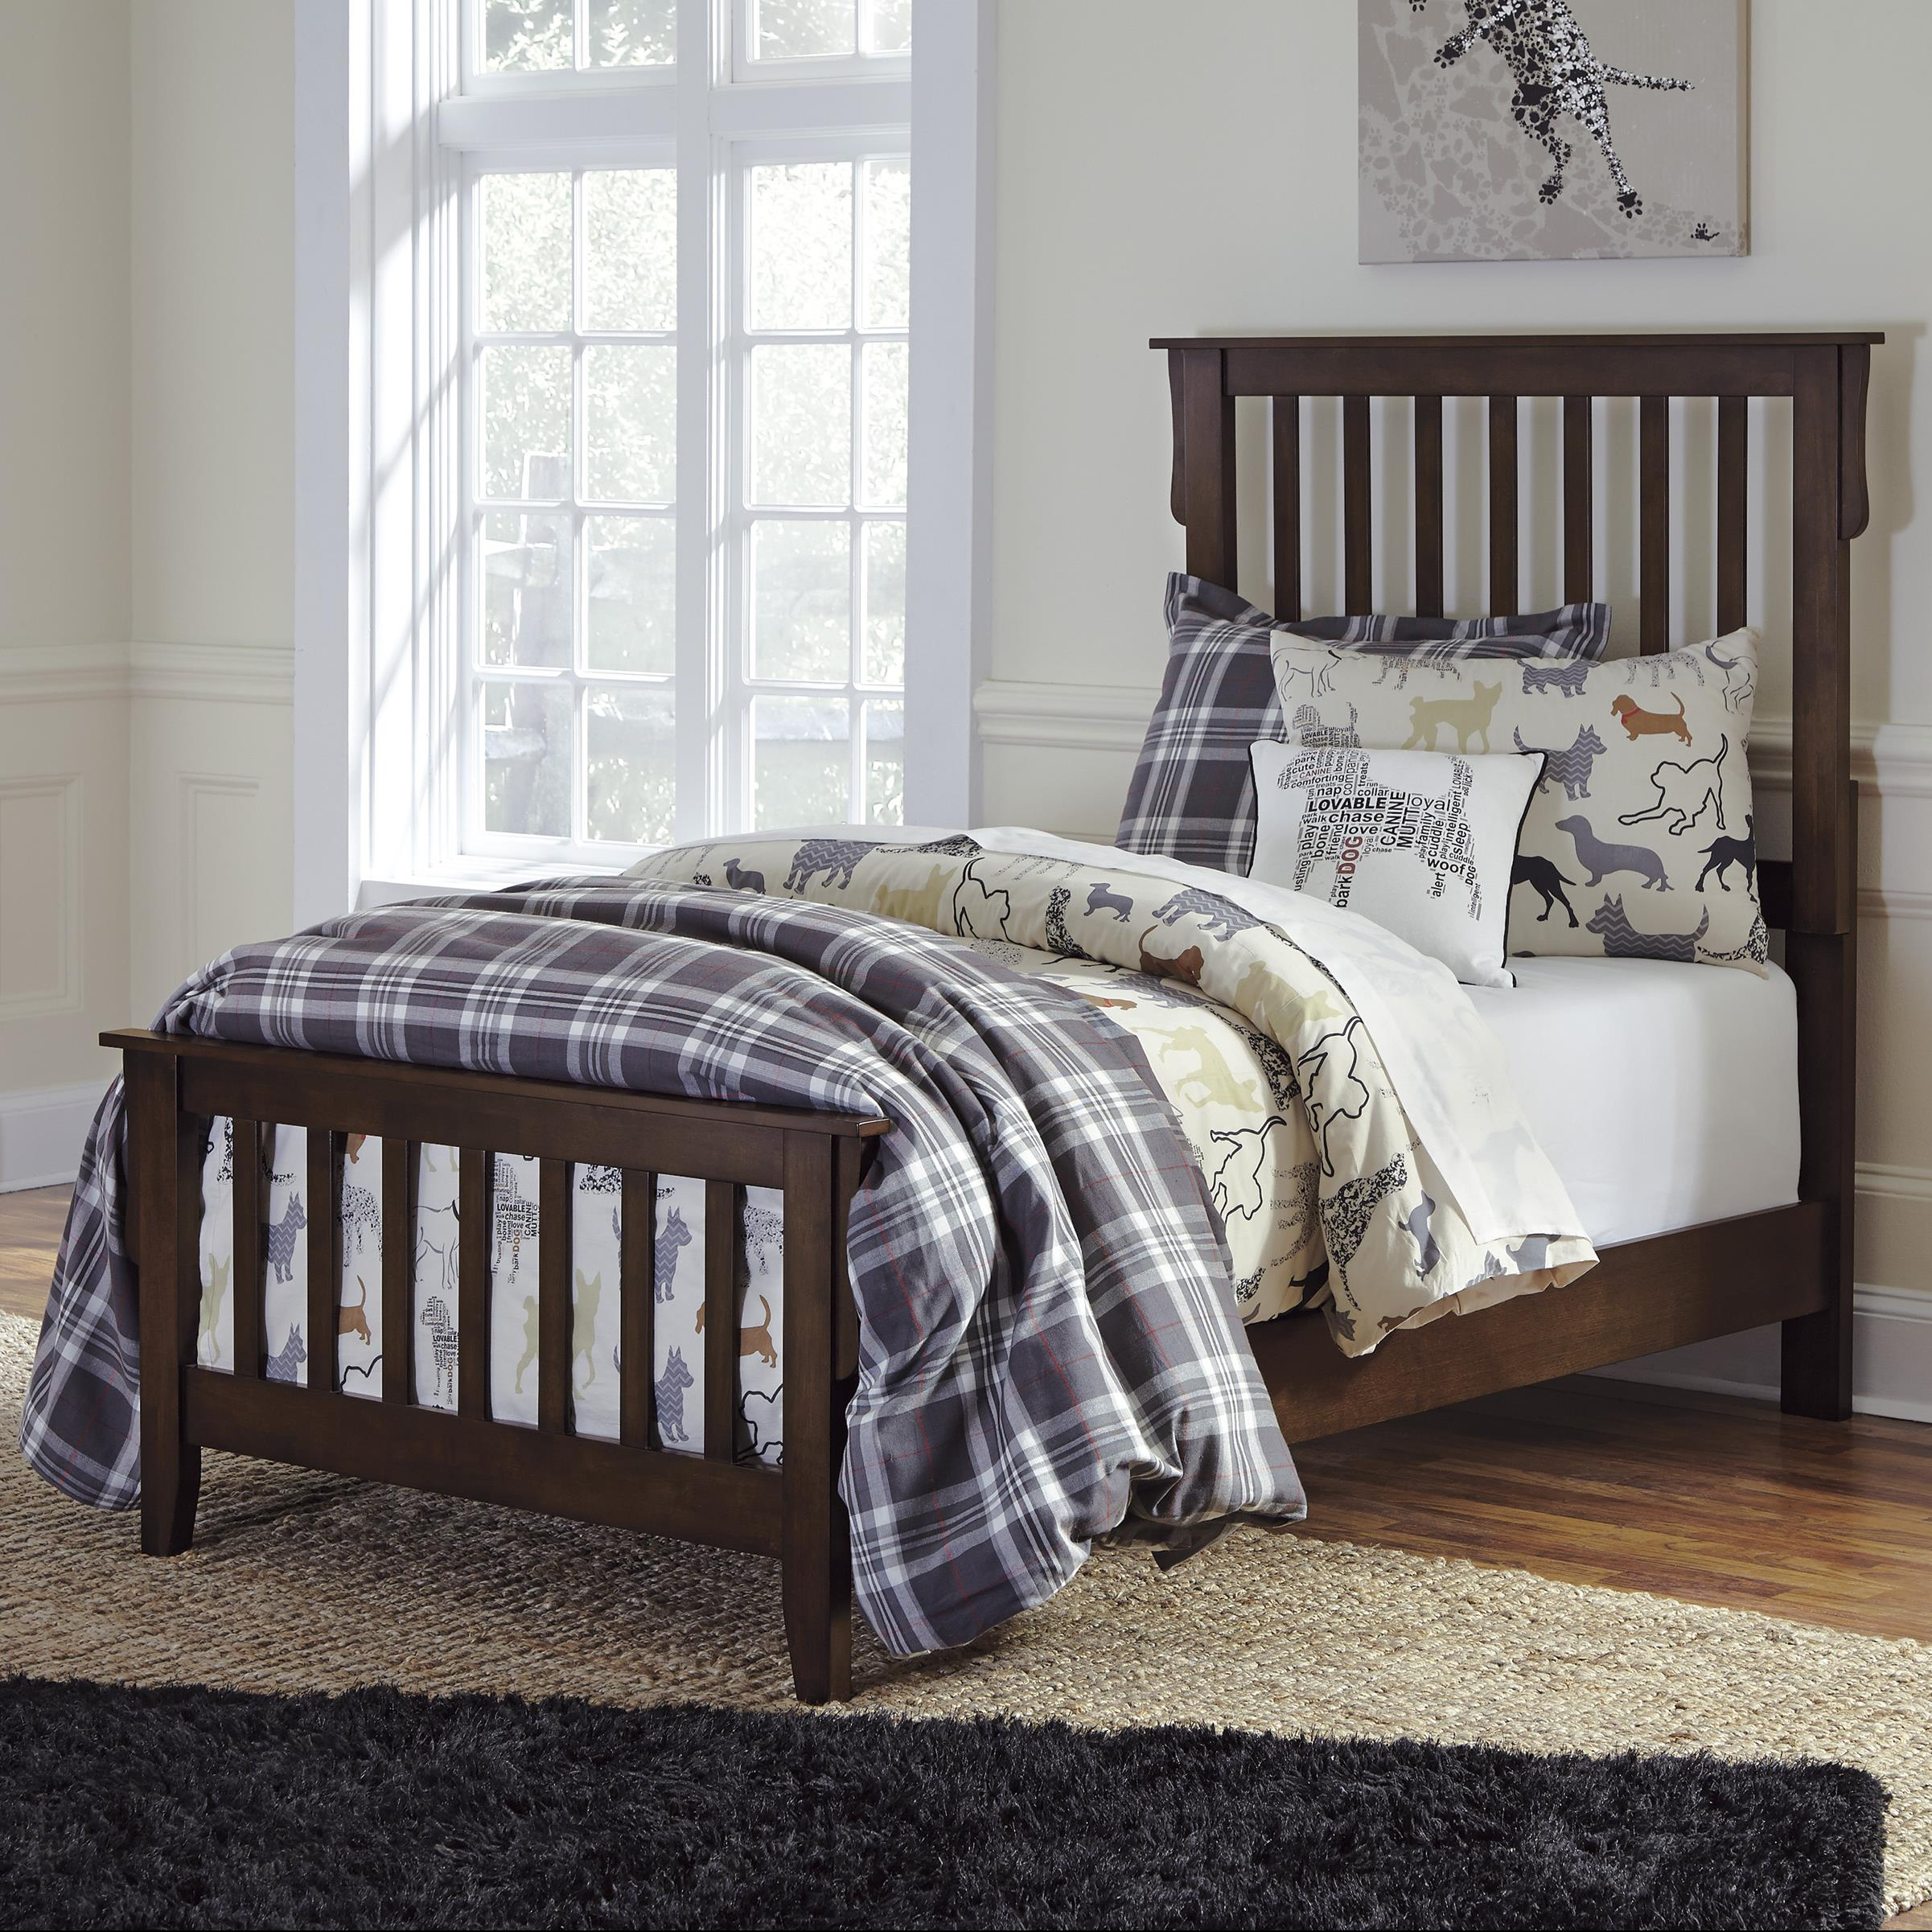 Signature Design by Ashley Strenton Twin Bed  - Item Number: B568-53+83